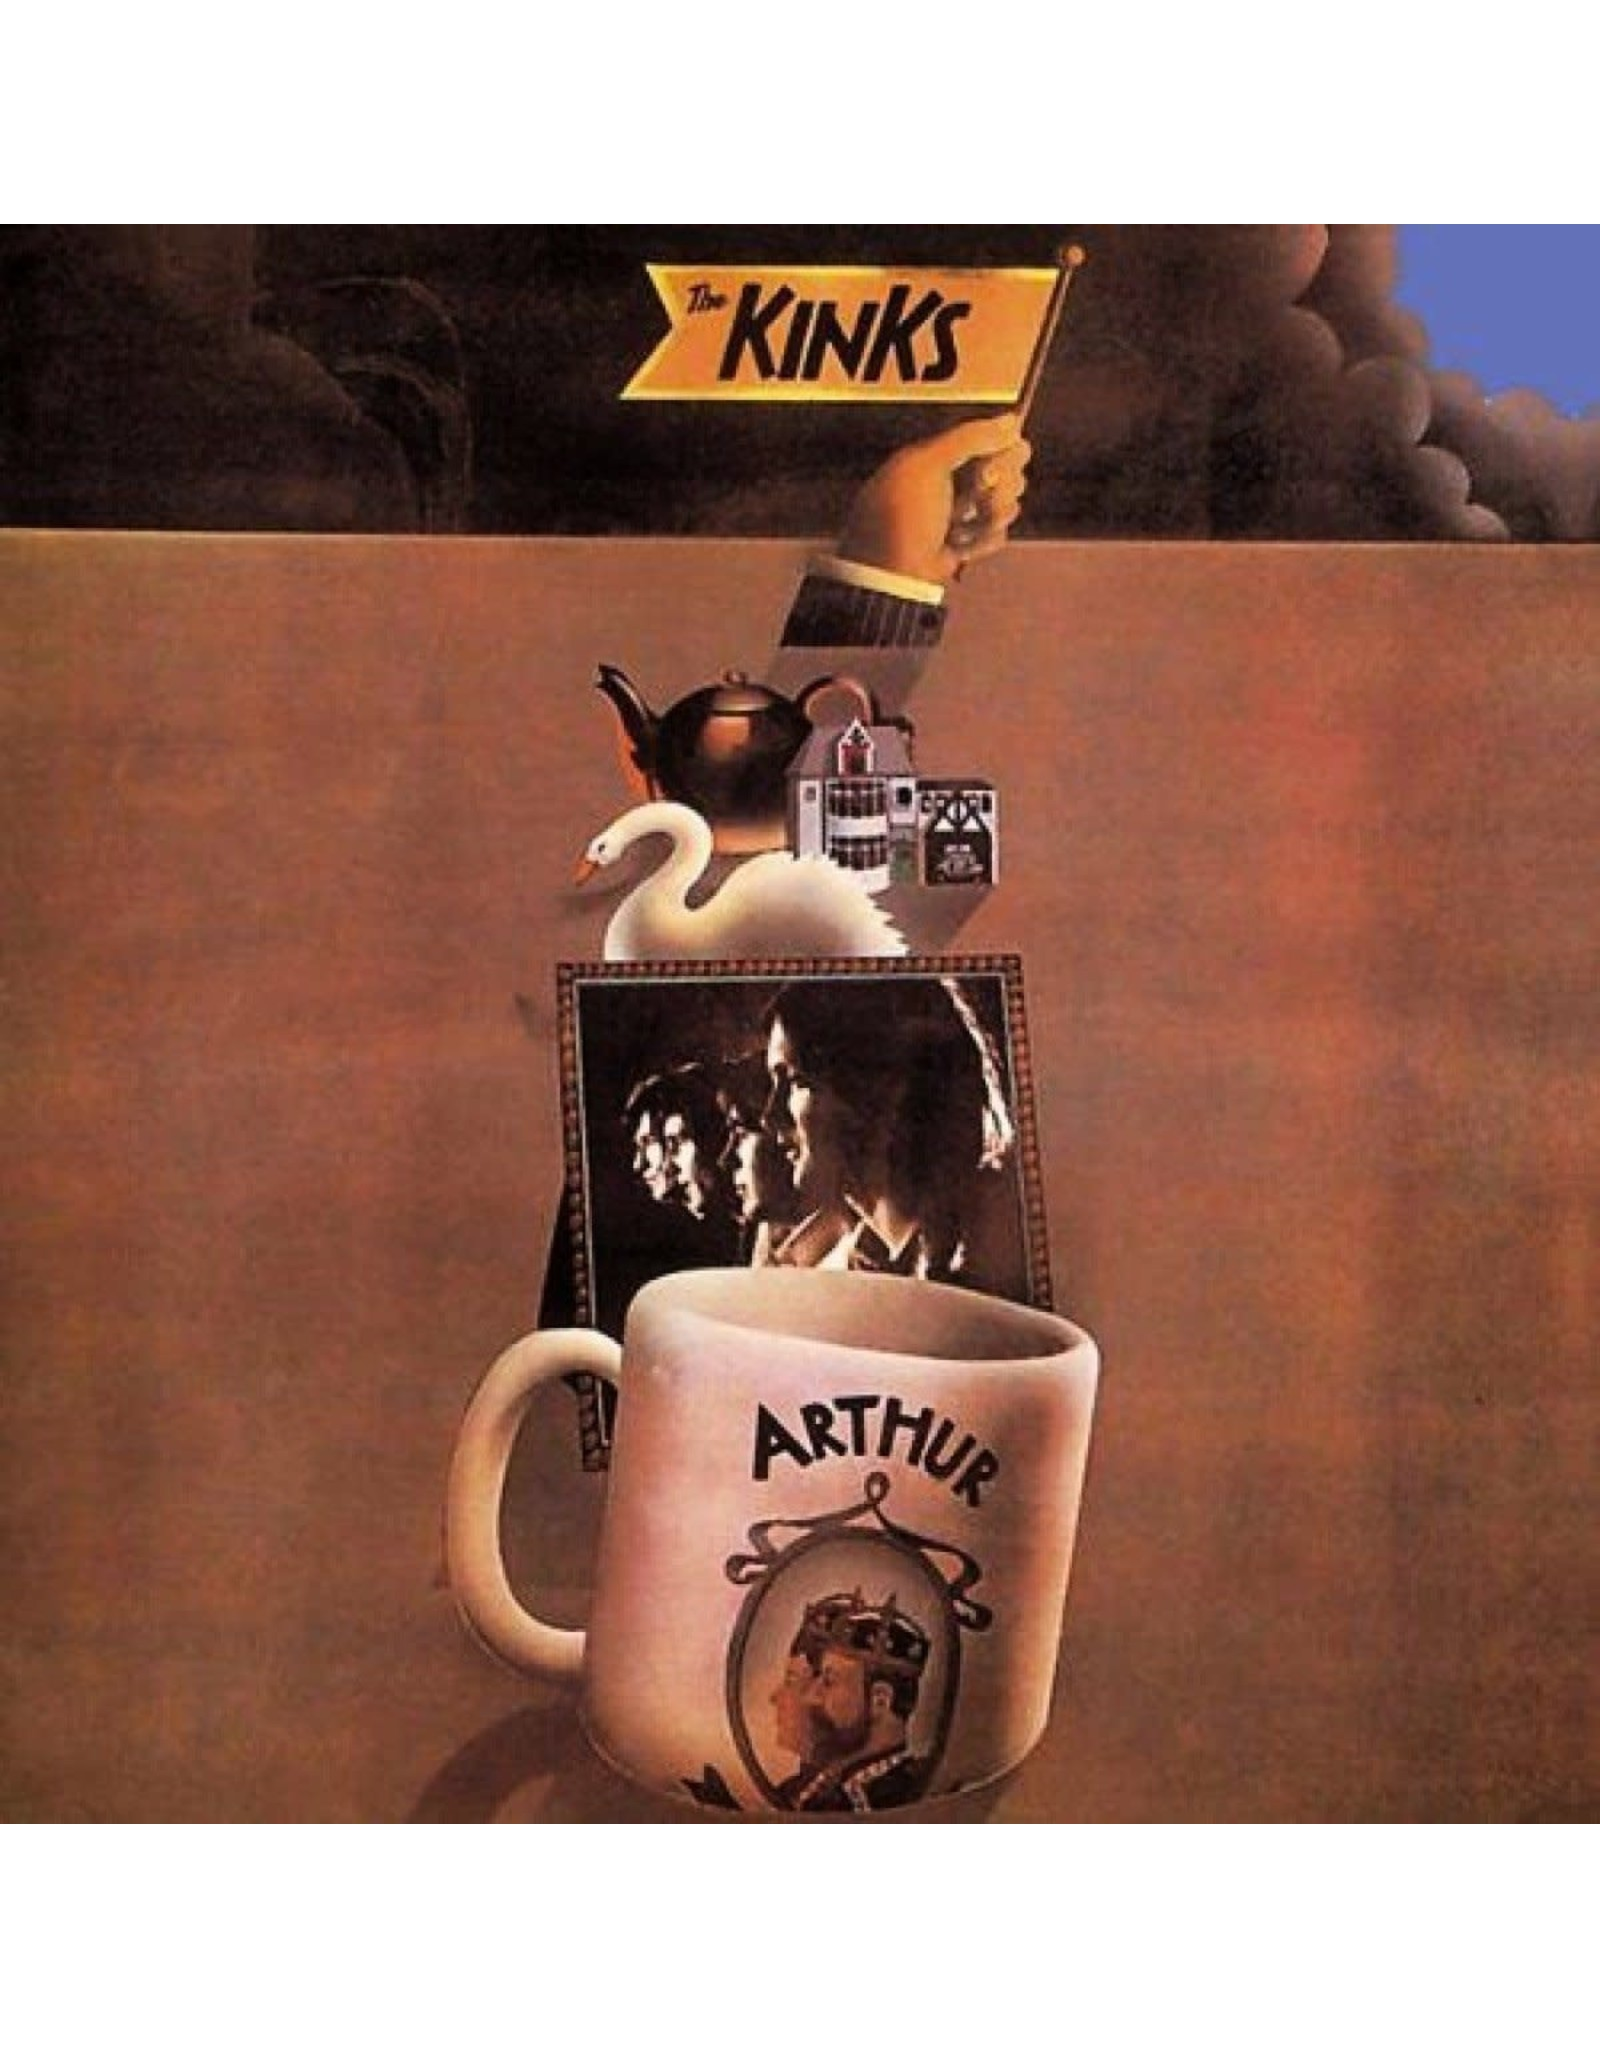 Kinks - Arthur Or the Decline & Fall of the British Empire (50th Anniversary)